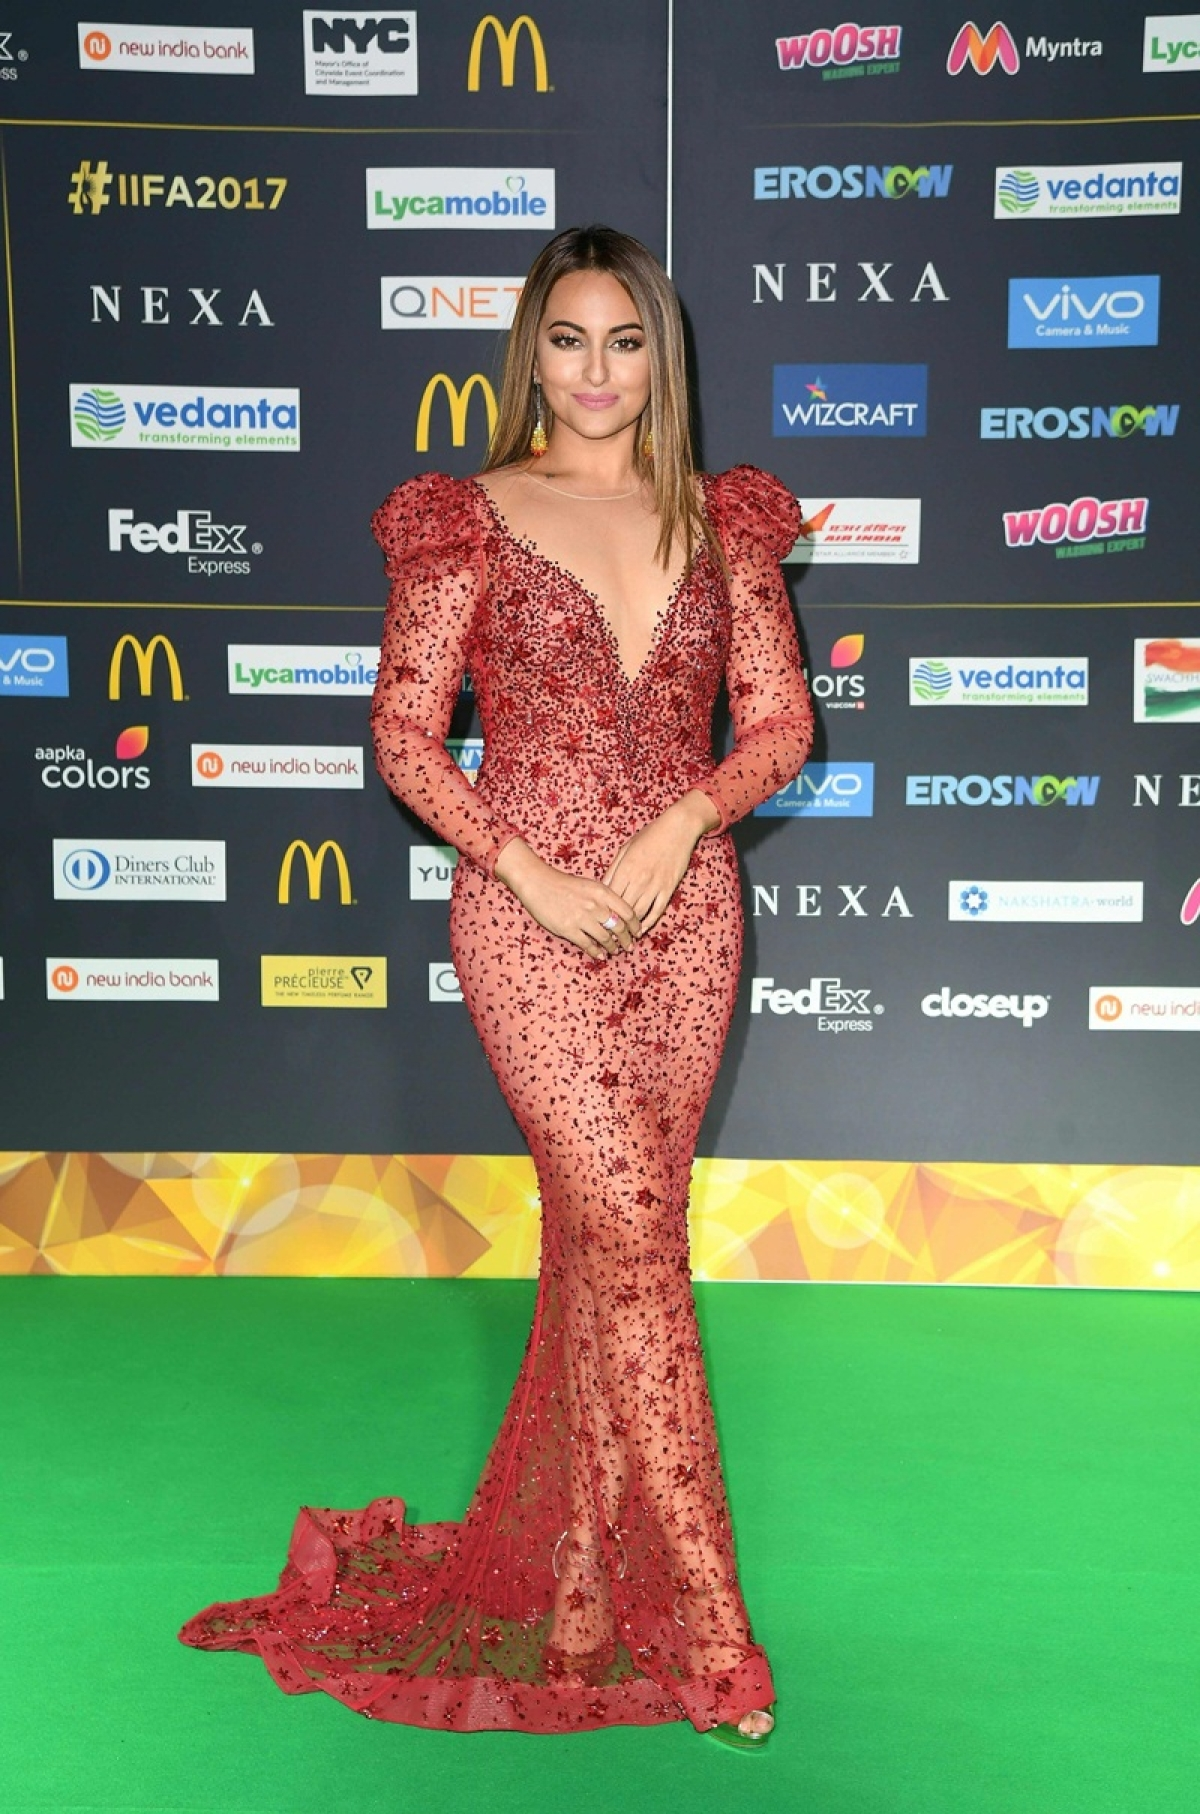 Bollywood Actress Sonakshi Sinha returns to the green carpet for the IIFA Awards July 15, 2017 at the MetLife Stadium in East Rutherford, New Jersey during the 18th International Indian Film Academy (IIFA) Festival. / AFP PHOTO / ANGELA WEISS